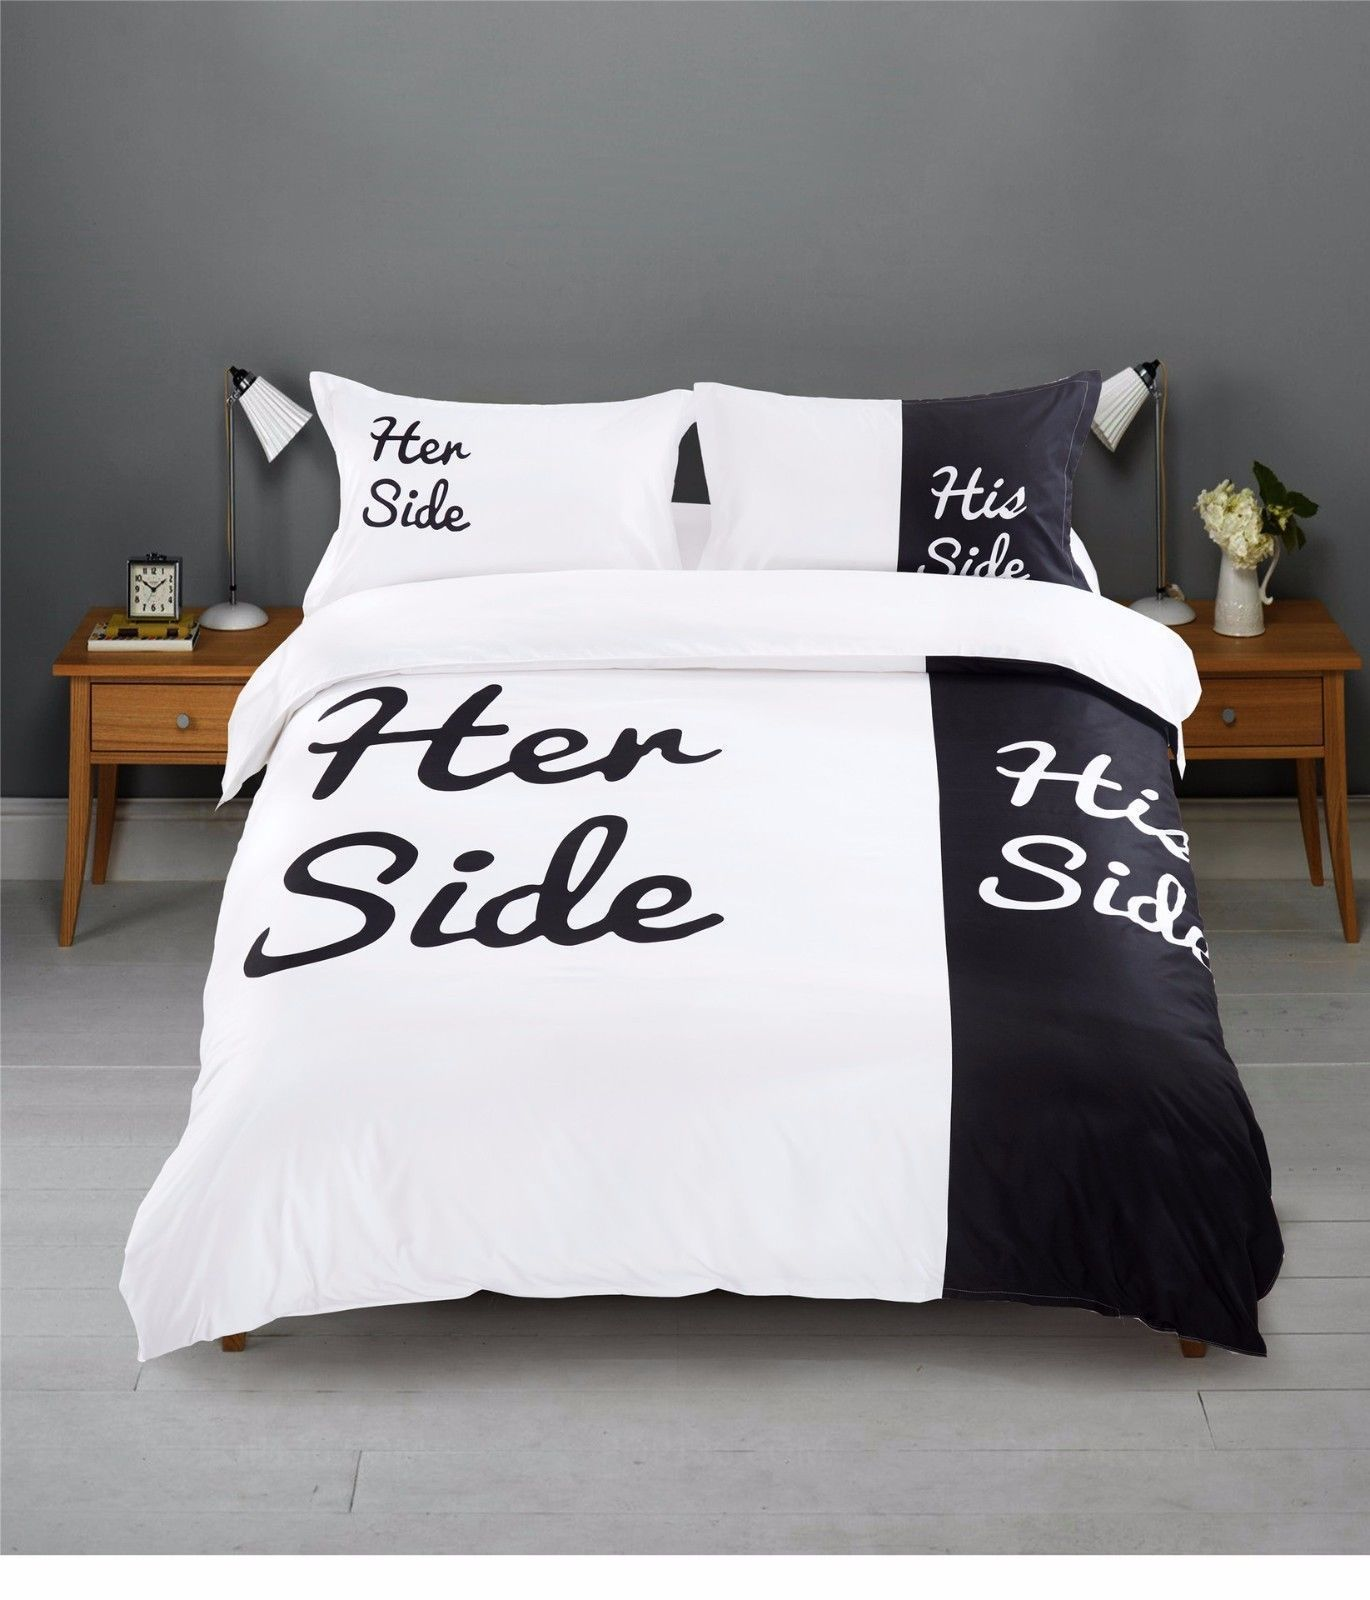 11 27 Lover Black White His And Her Side King Bed Size Duvet Quilt Cover Bedding Set Ebay Home G Queen Bedding Sets Couples Bedding Set Bed Duvet Covers